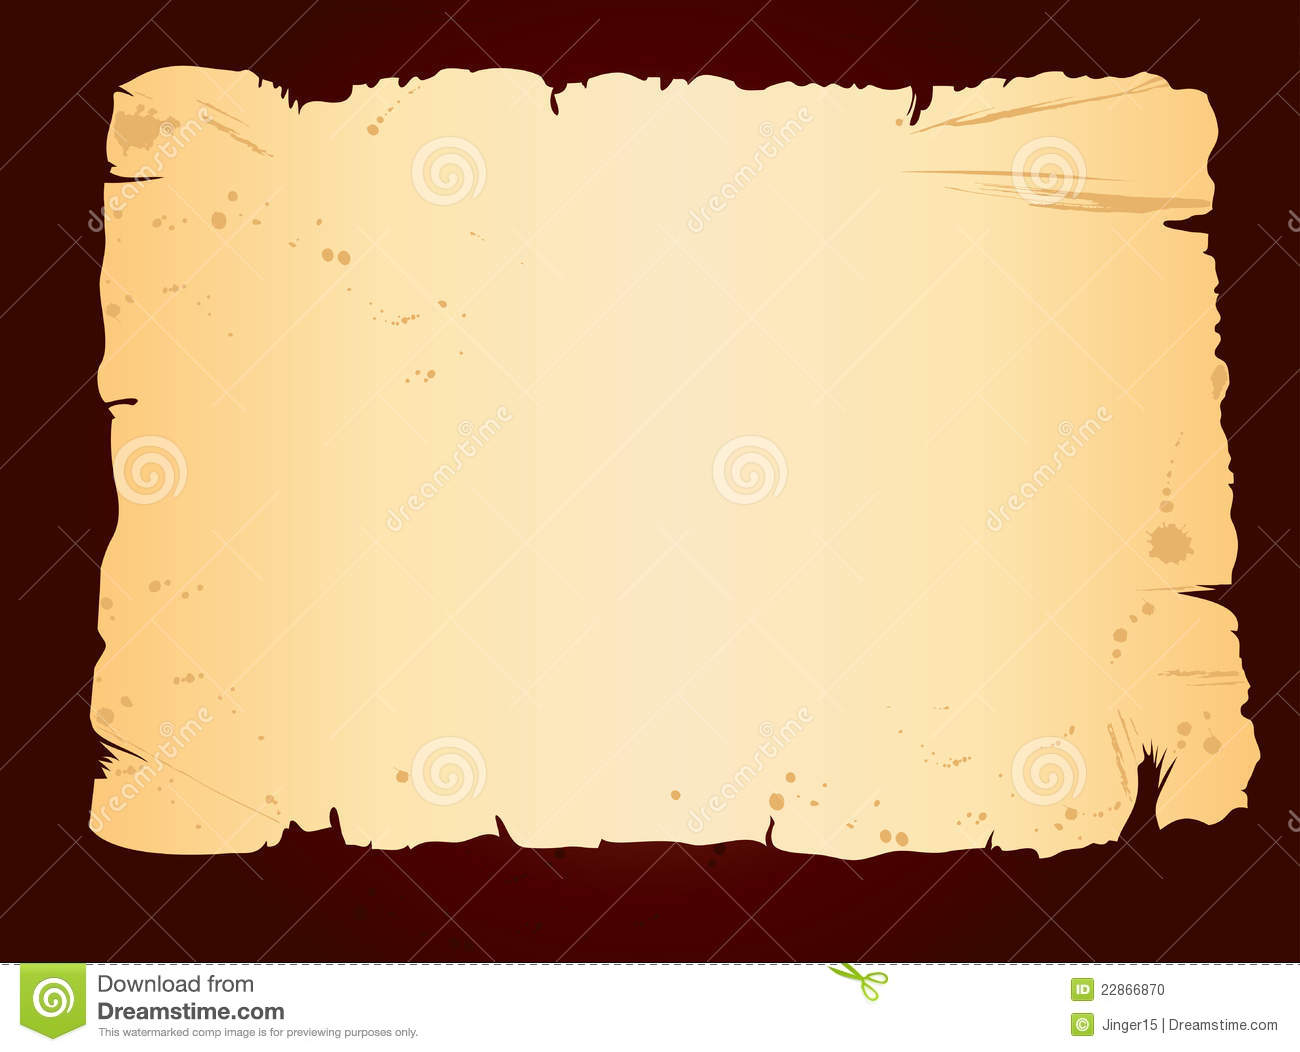 Old Blank Sheet Of Paper Stock Vector. Illustration Of